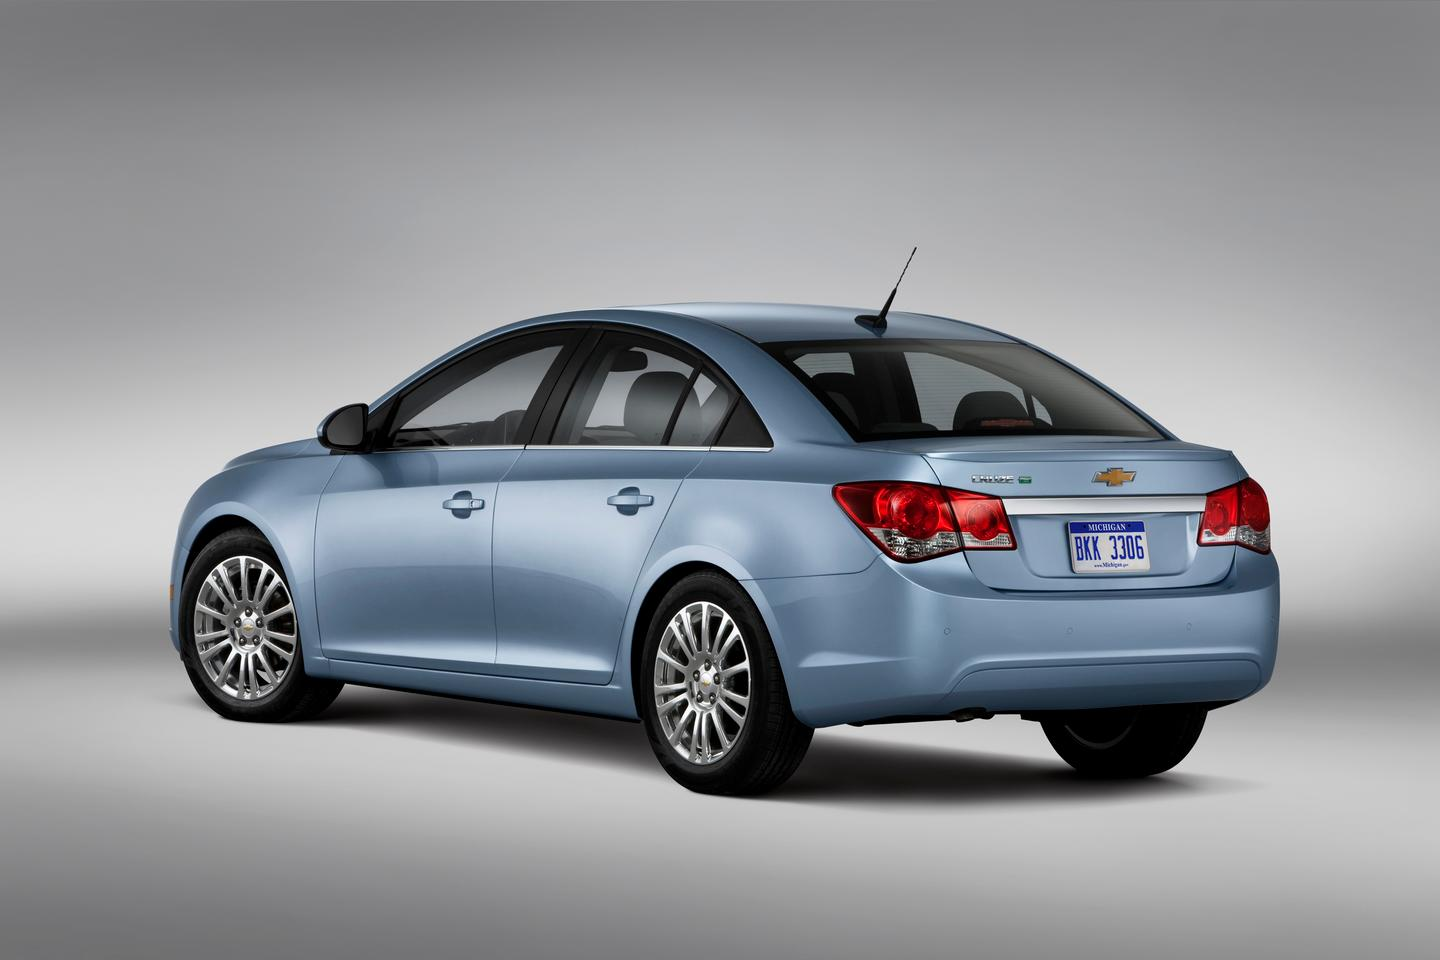 Chevrolet's non-hybrid Cruze Eco promises 40mpg highway, comparable to the hybrid Honda Insight's 43mpg